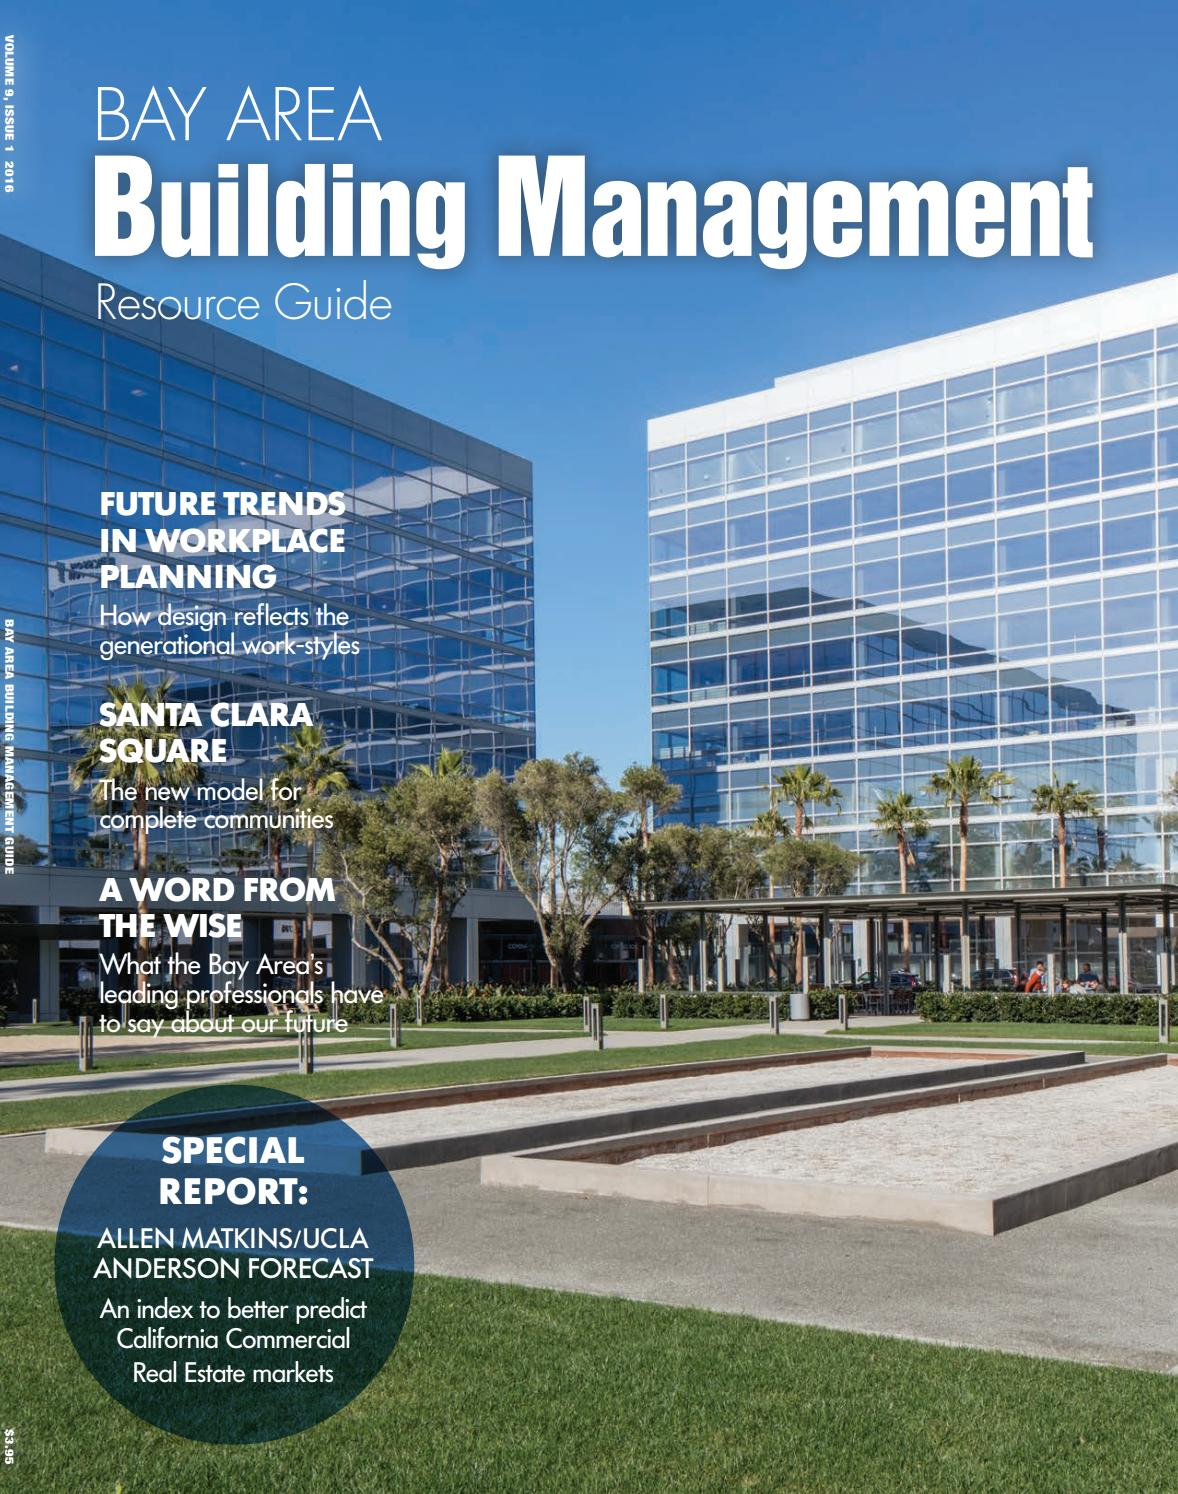 Bay Area Building Management Guide Spring 2016 by Kris Mcfarland - issuu